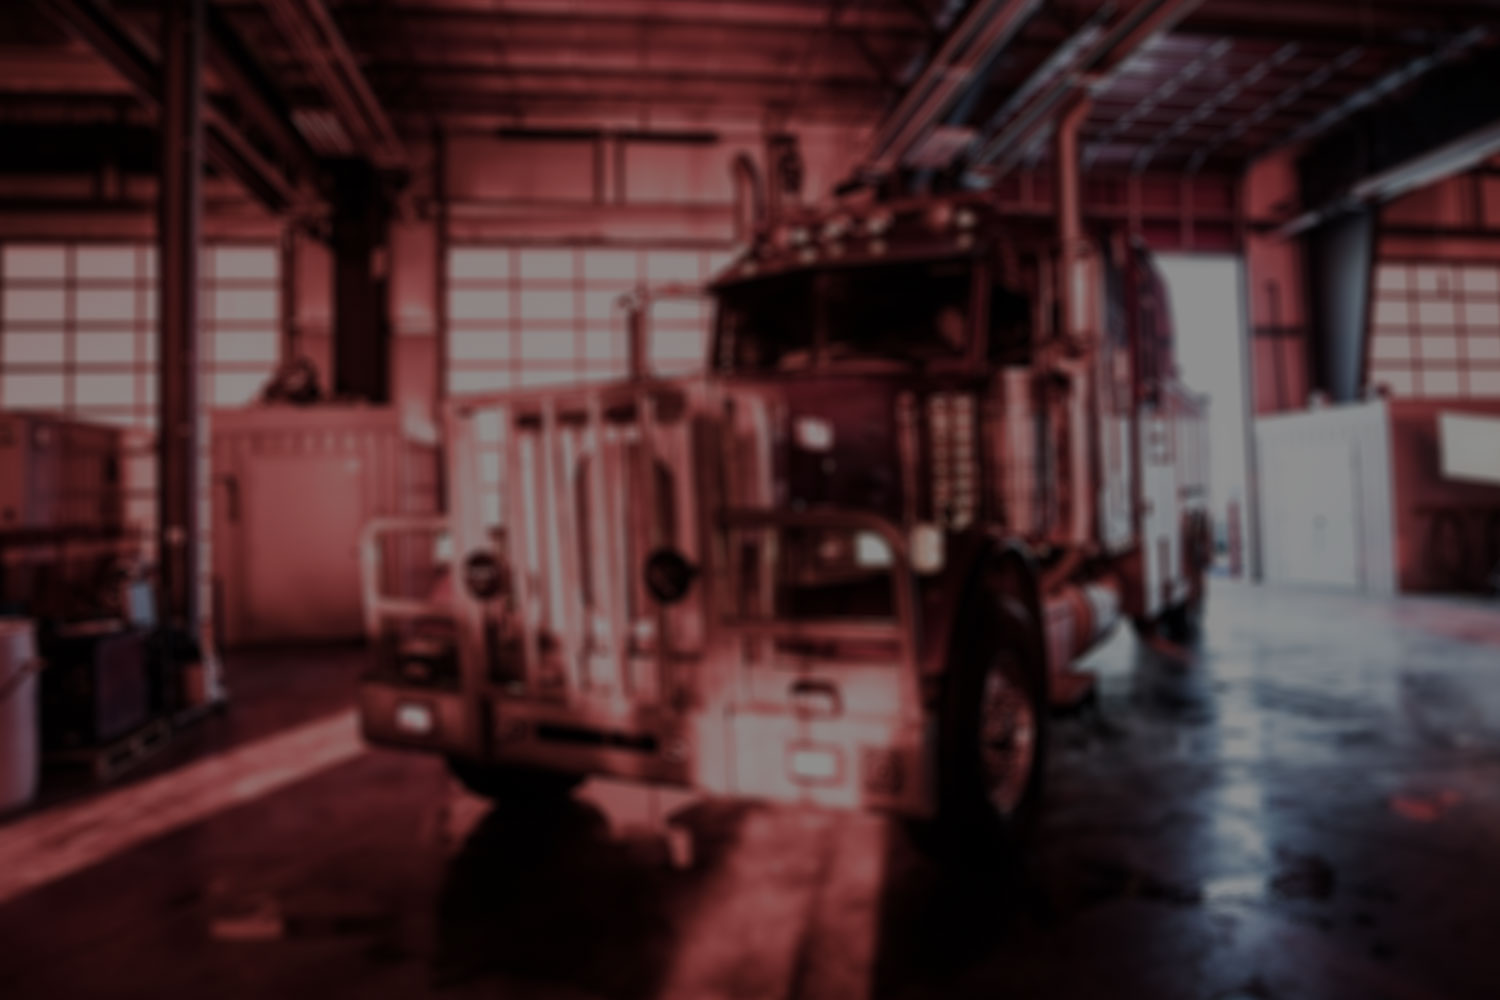 fire truck blur with black overlay